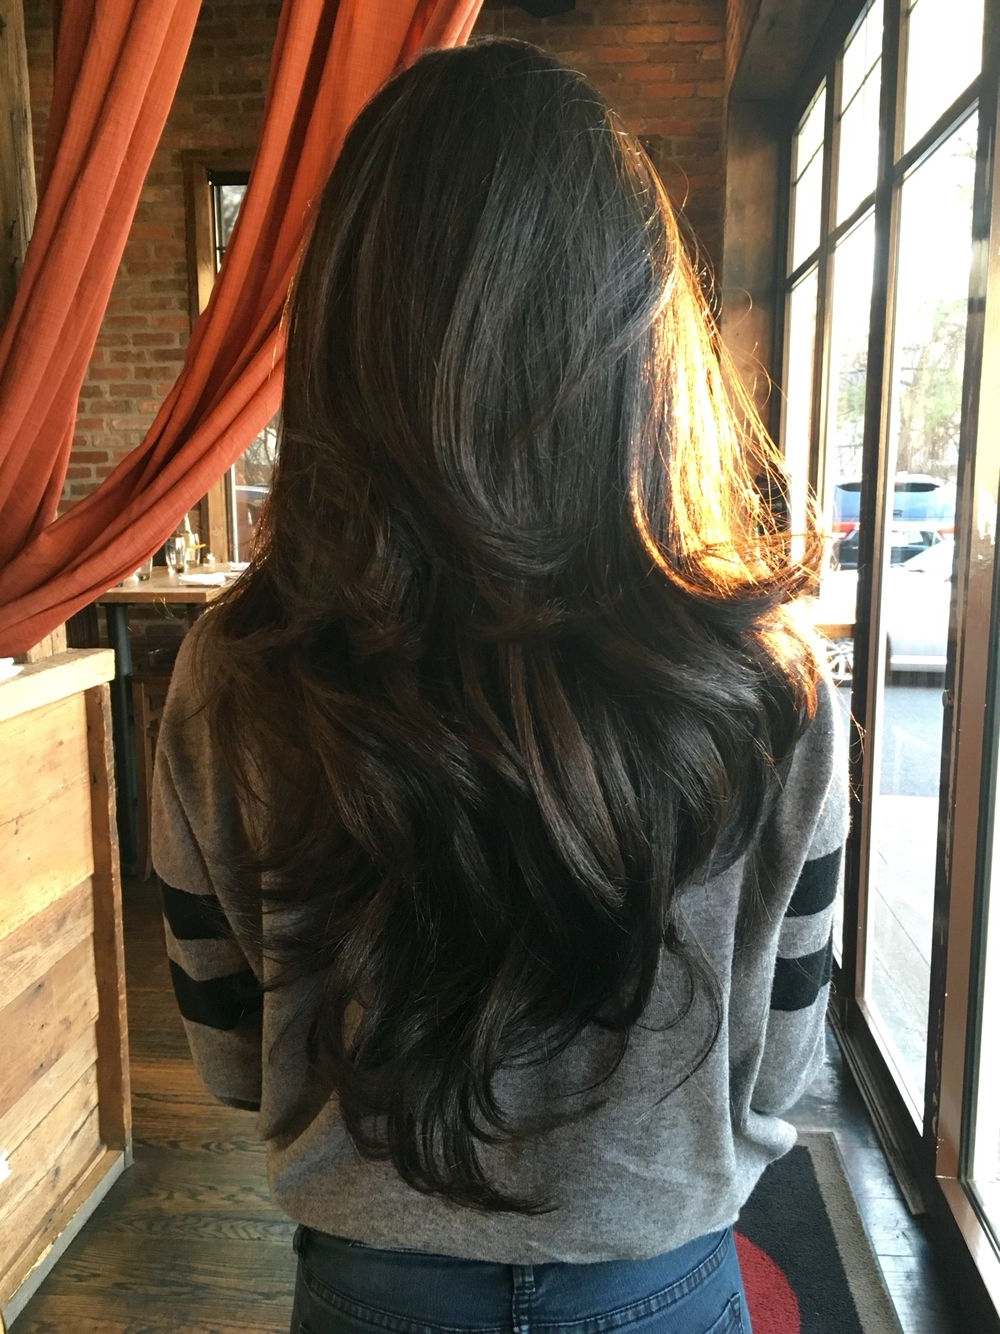 Layered V Cut Regarding Recent Reddish Brown Hairstyles With Long V Cut Layers (View 2 of 20)